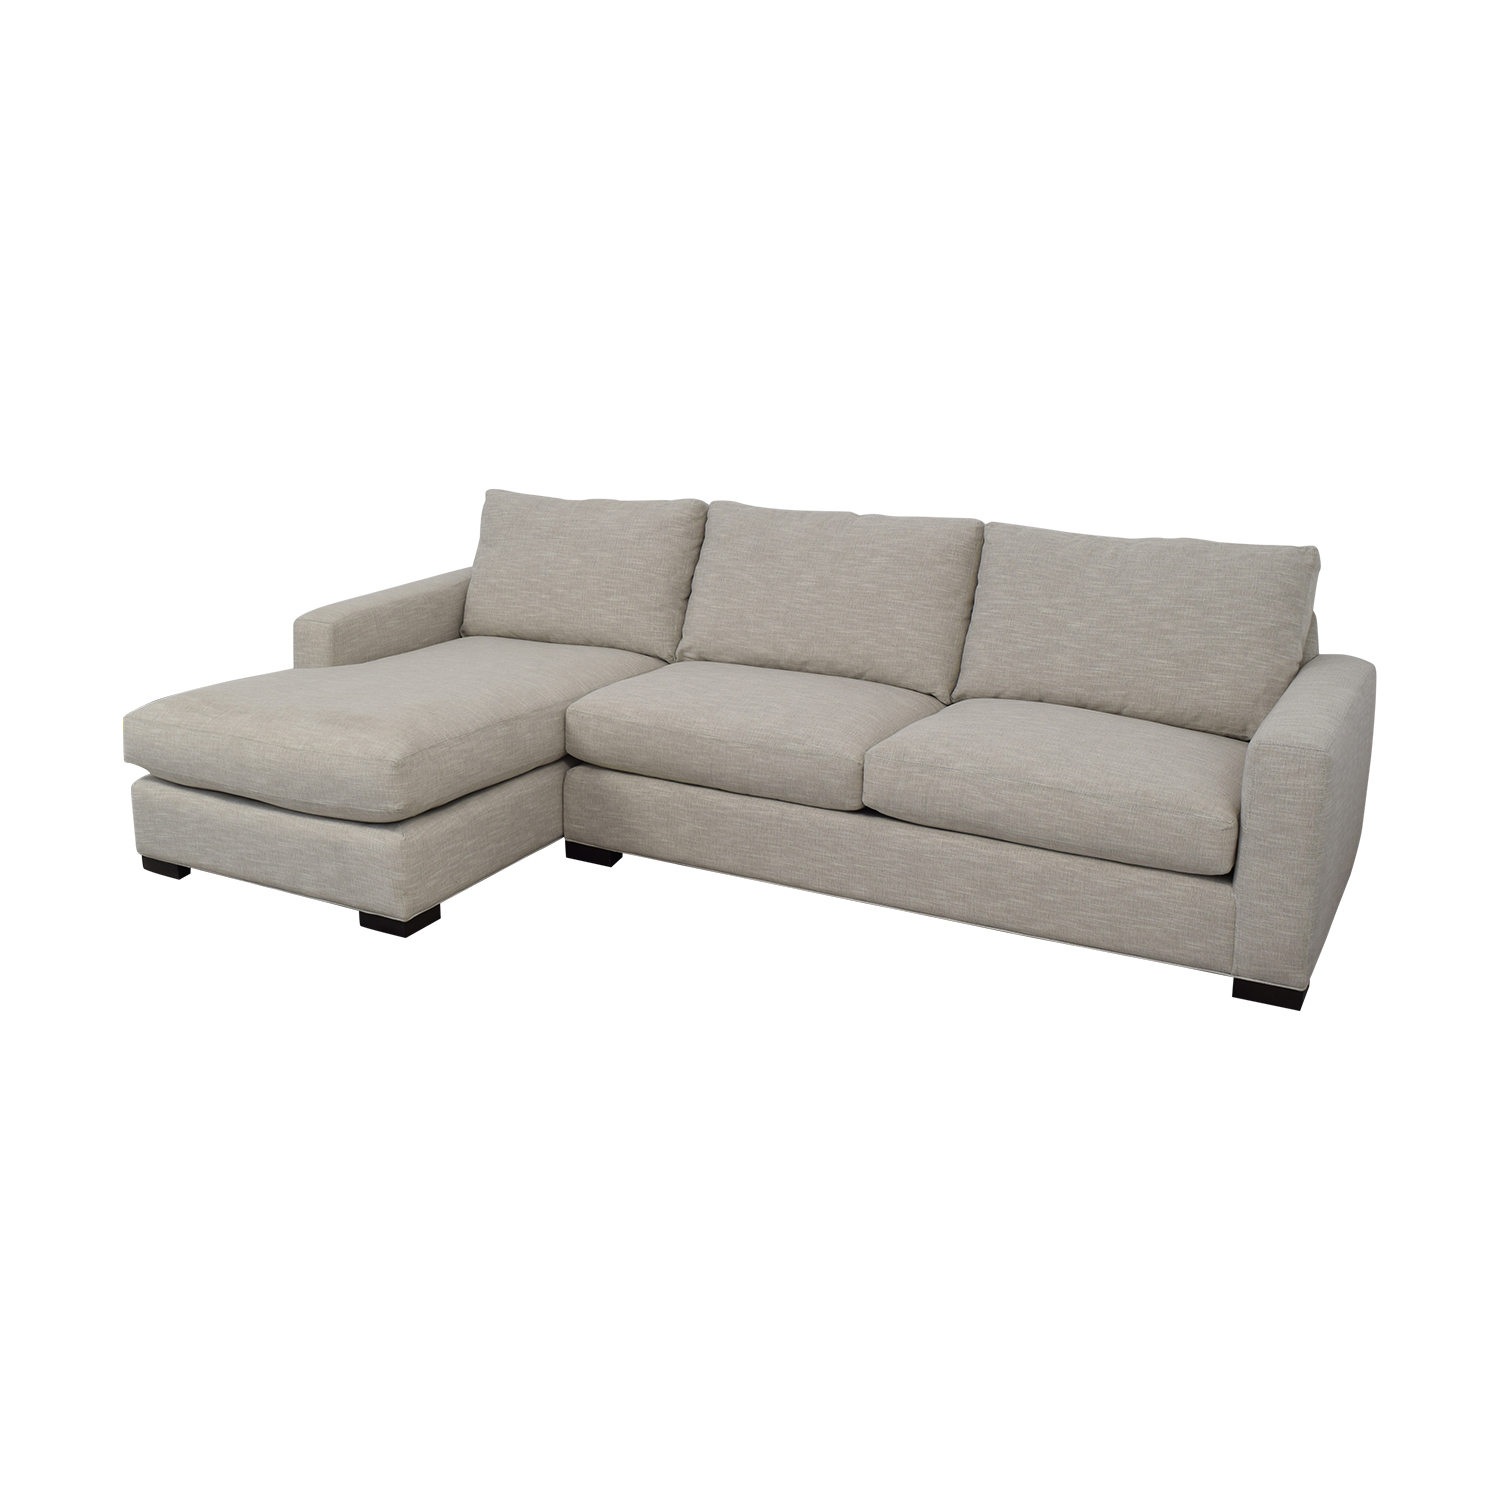 buy Room & Board Metro Sofa with Chaise Room & Board